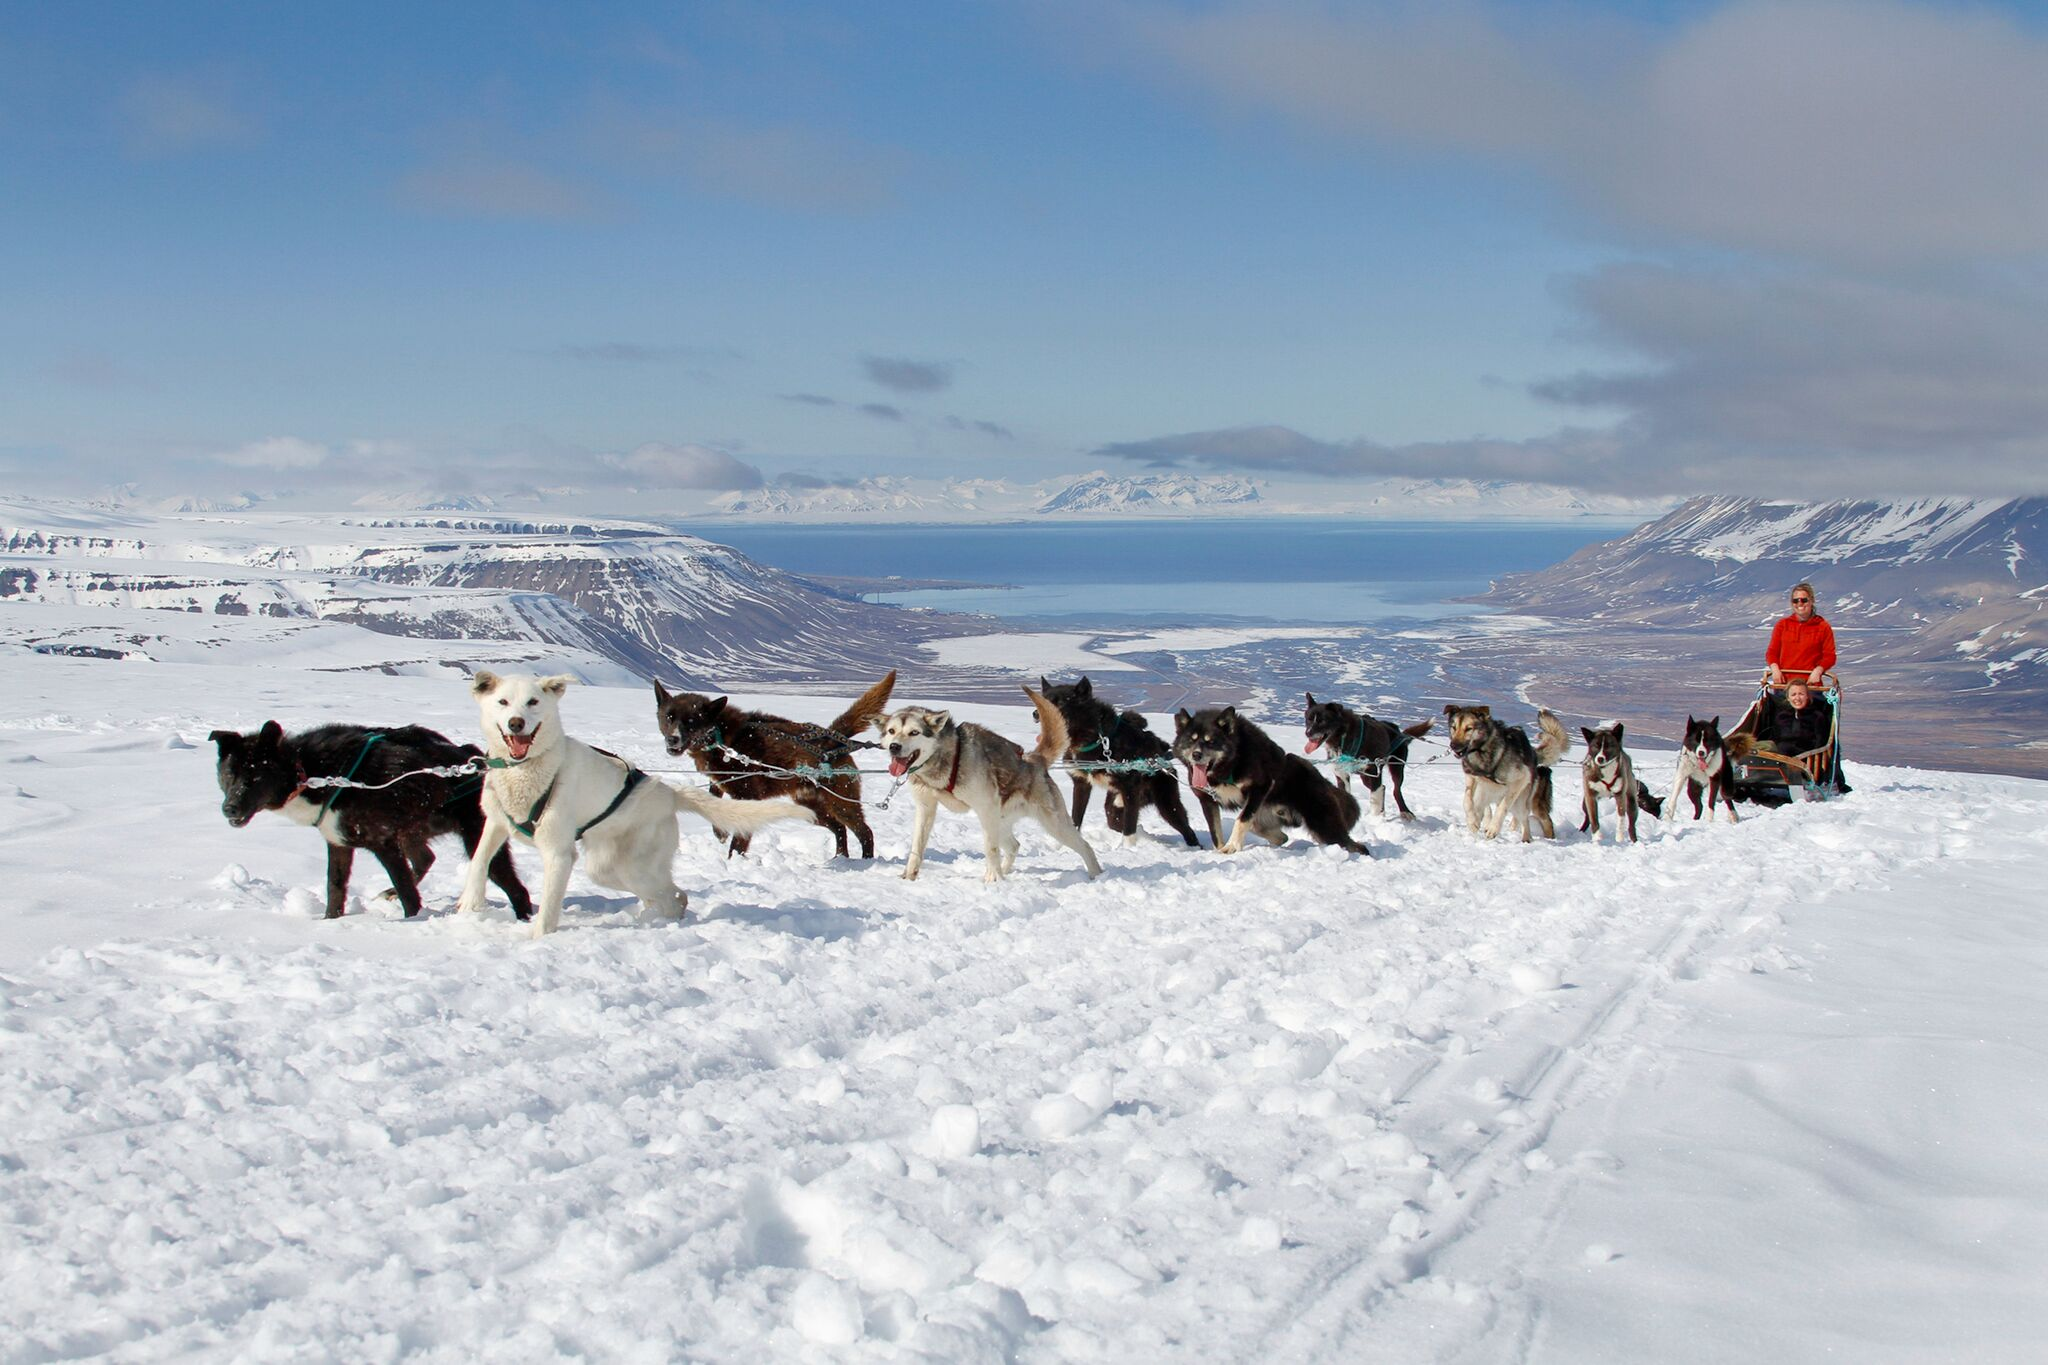 Dog Sledding in Svalbard/Spitsbergen Norway